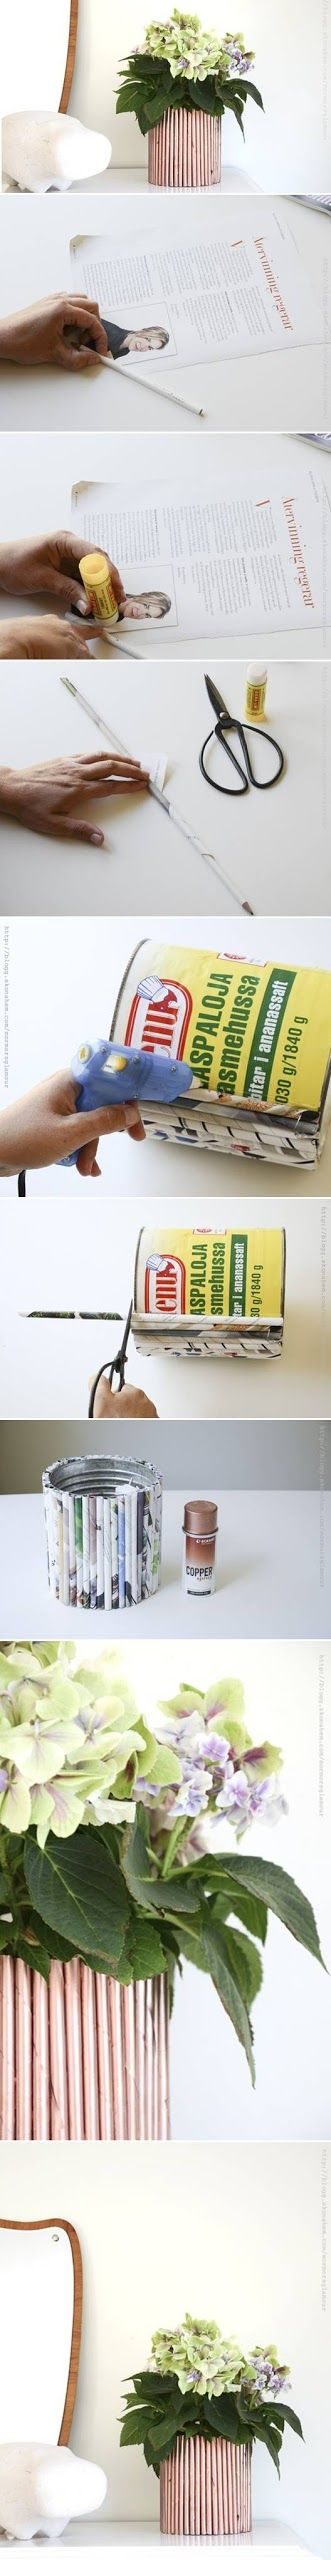 DIY : Newspaper Decor Flower Pot. There are so many thing you can make to decorate your home with out having to spend so much money.